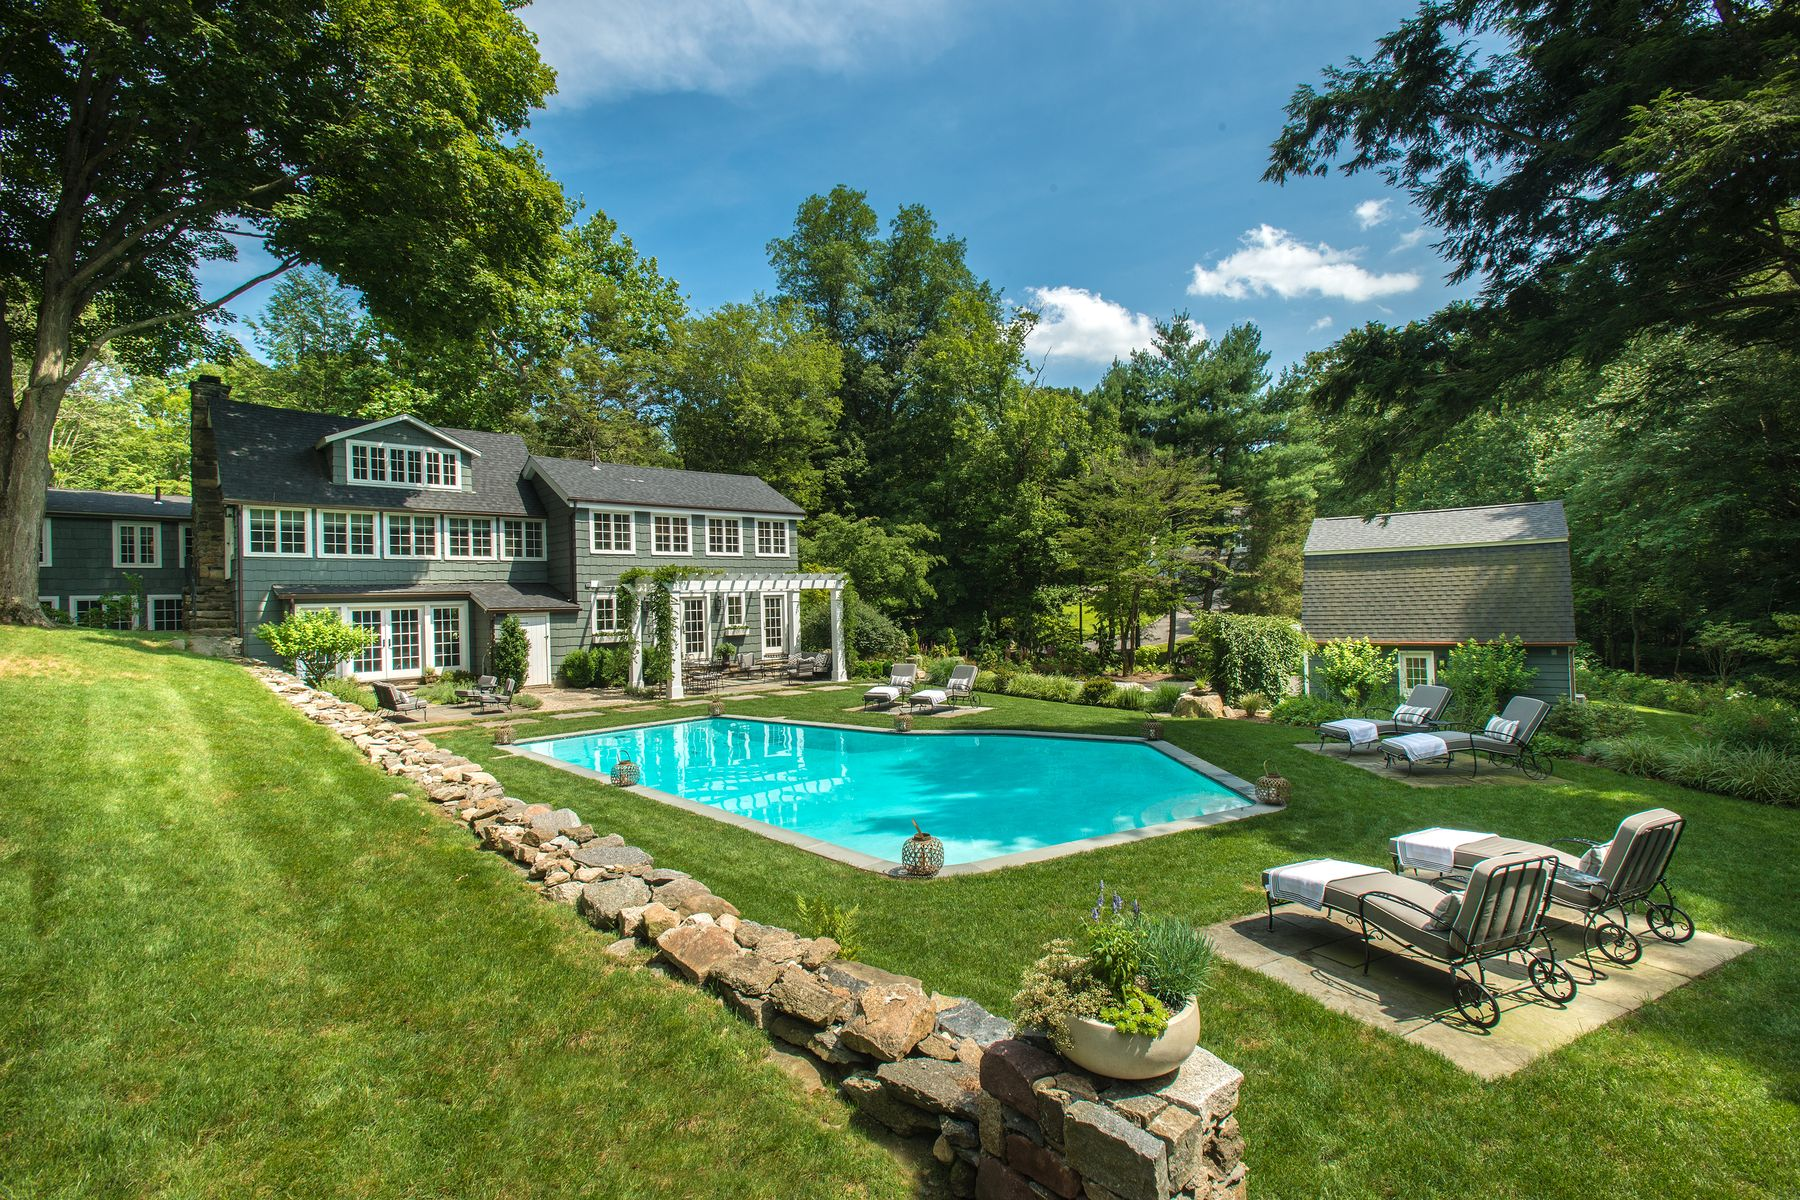 Single Family Homes for Sale at Stunning Historic Renovation! 66 Cat Rock Road Cos Cob, Connecticut 06807 United States